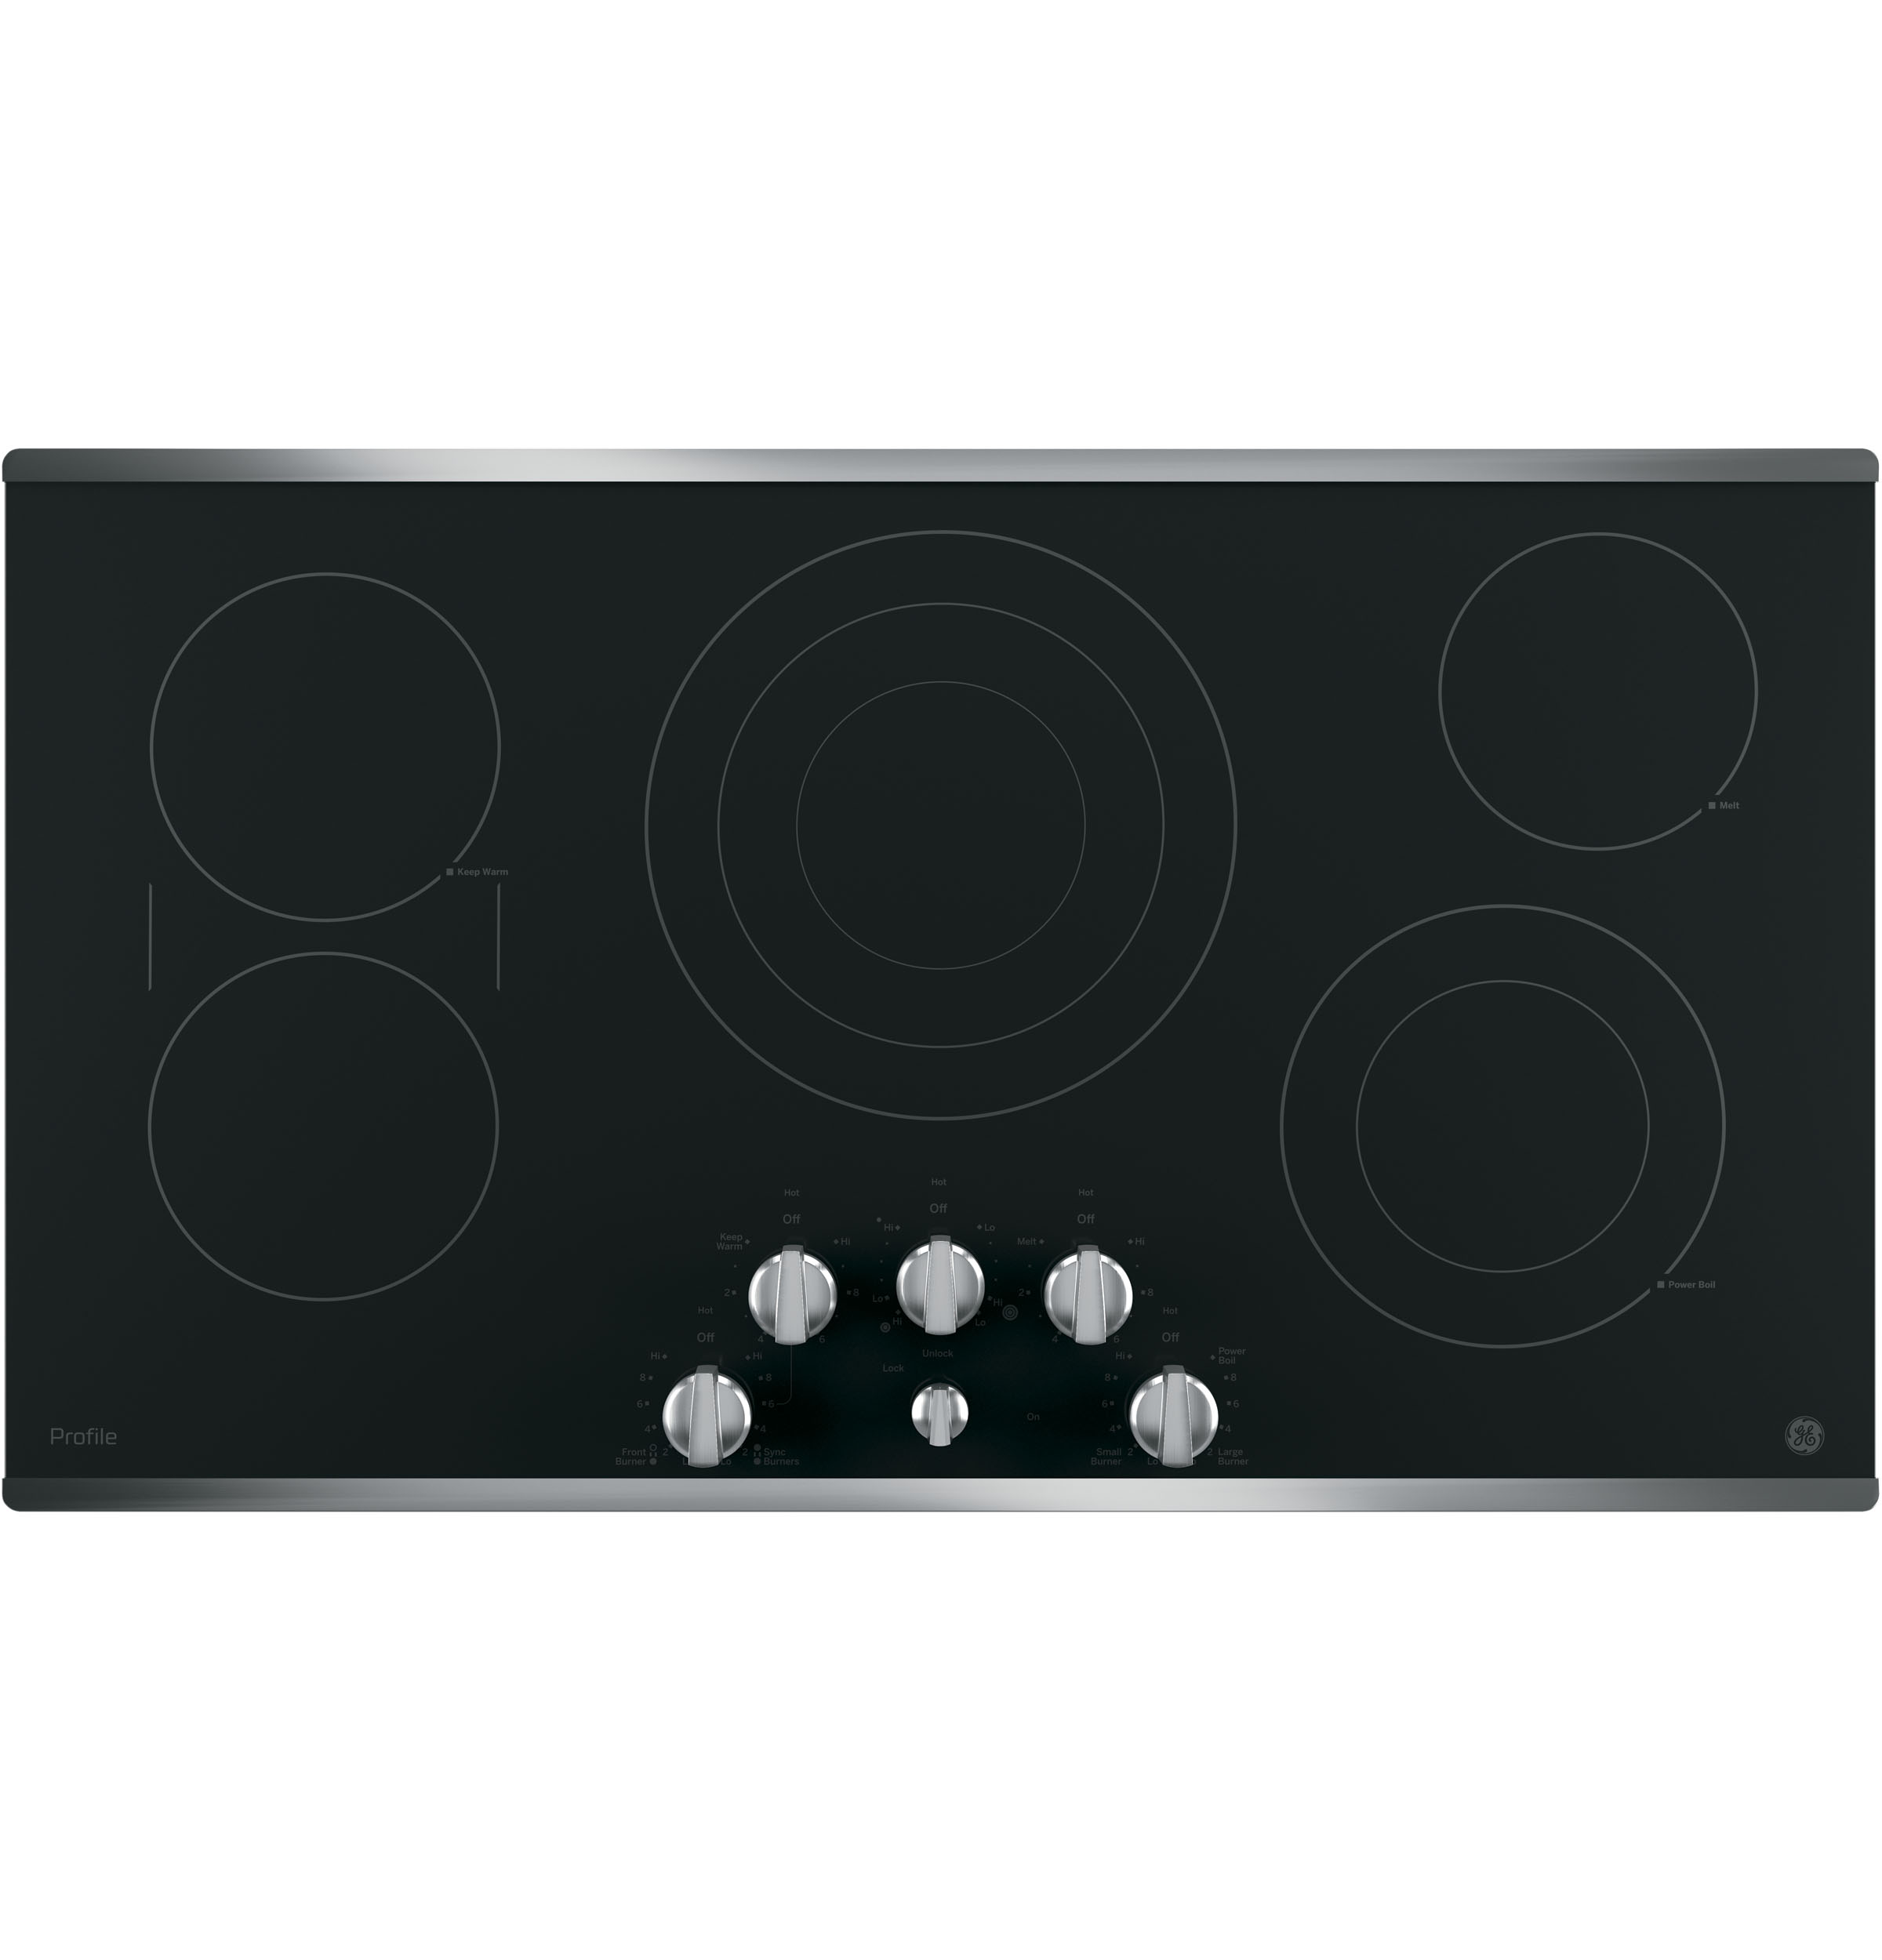 "Profile GE Profile™ 36"" Built-In Knob Control Cooktop"